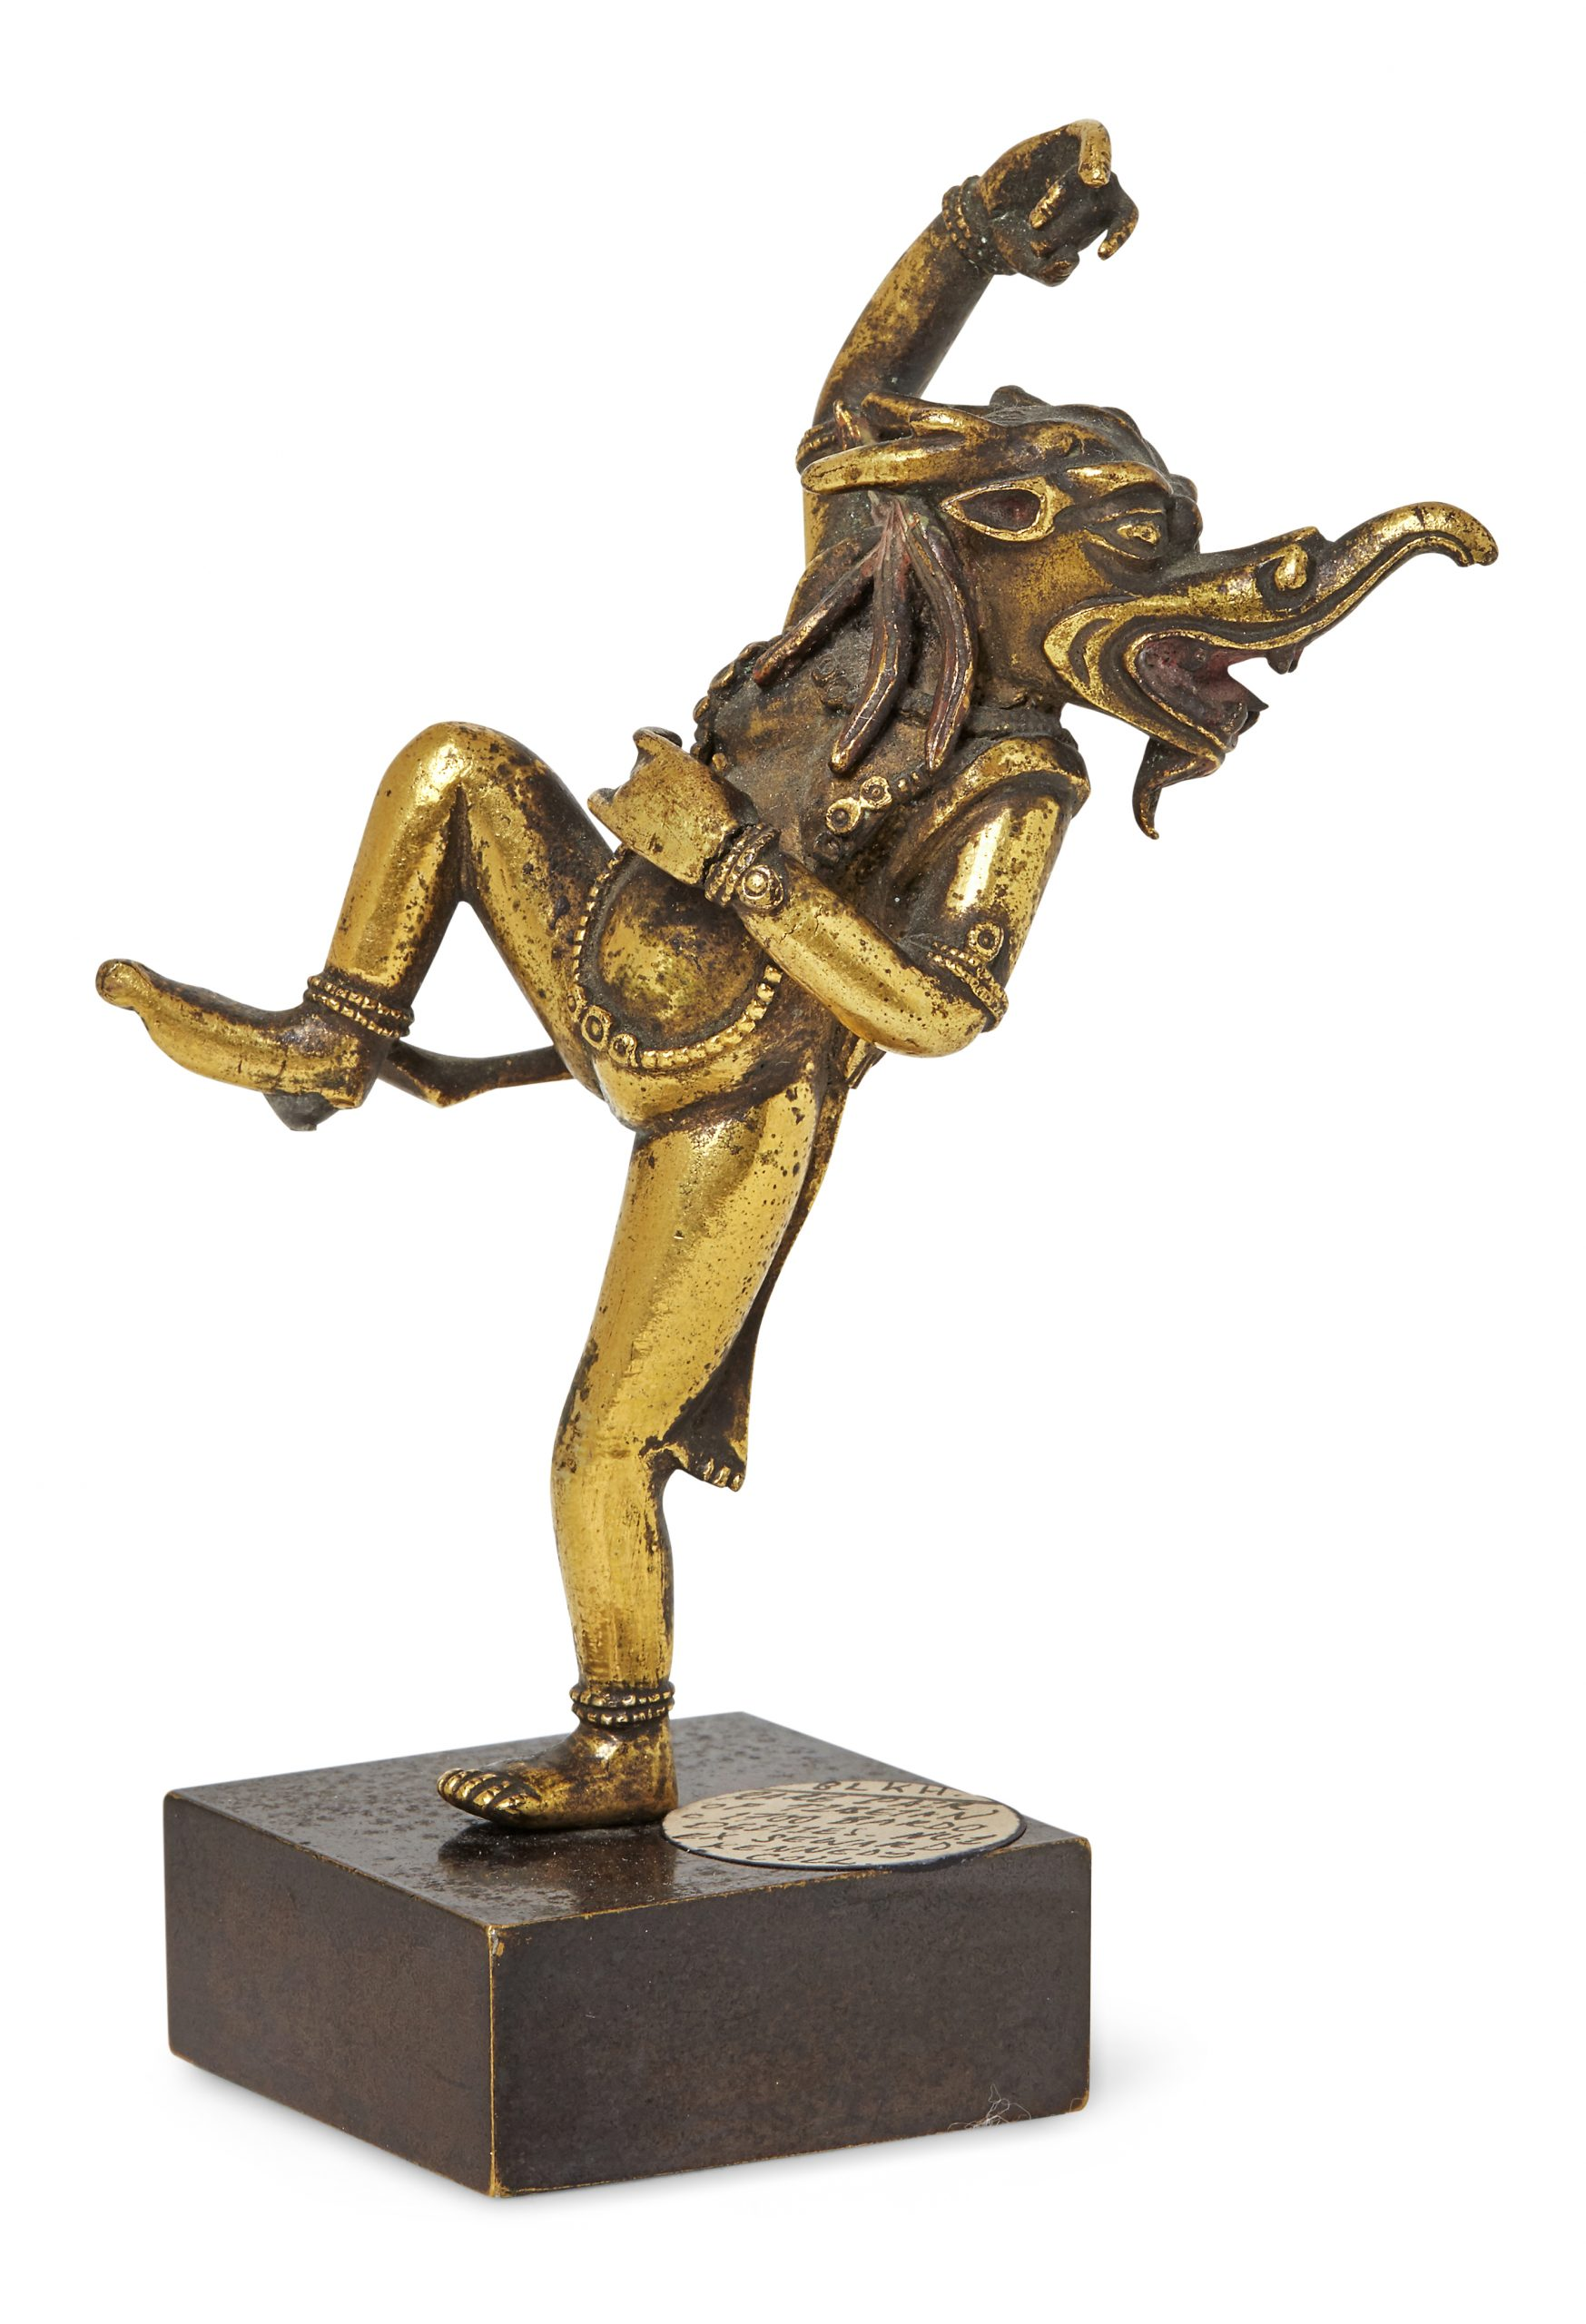 A Tibetan gilt-bronze bardo Makara-headed dancing deity, 17th century, 9cm high